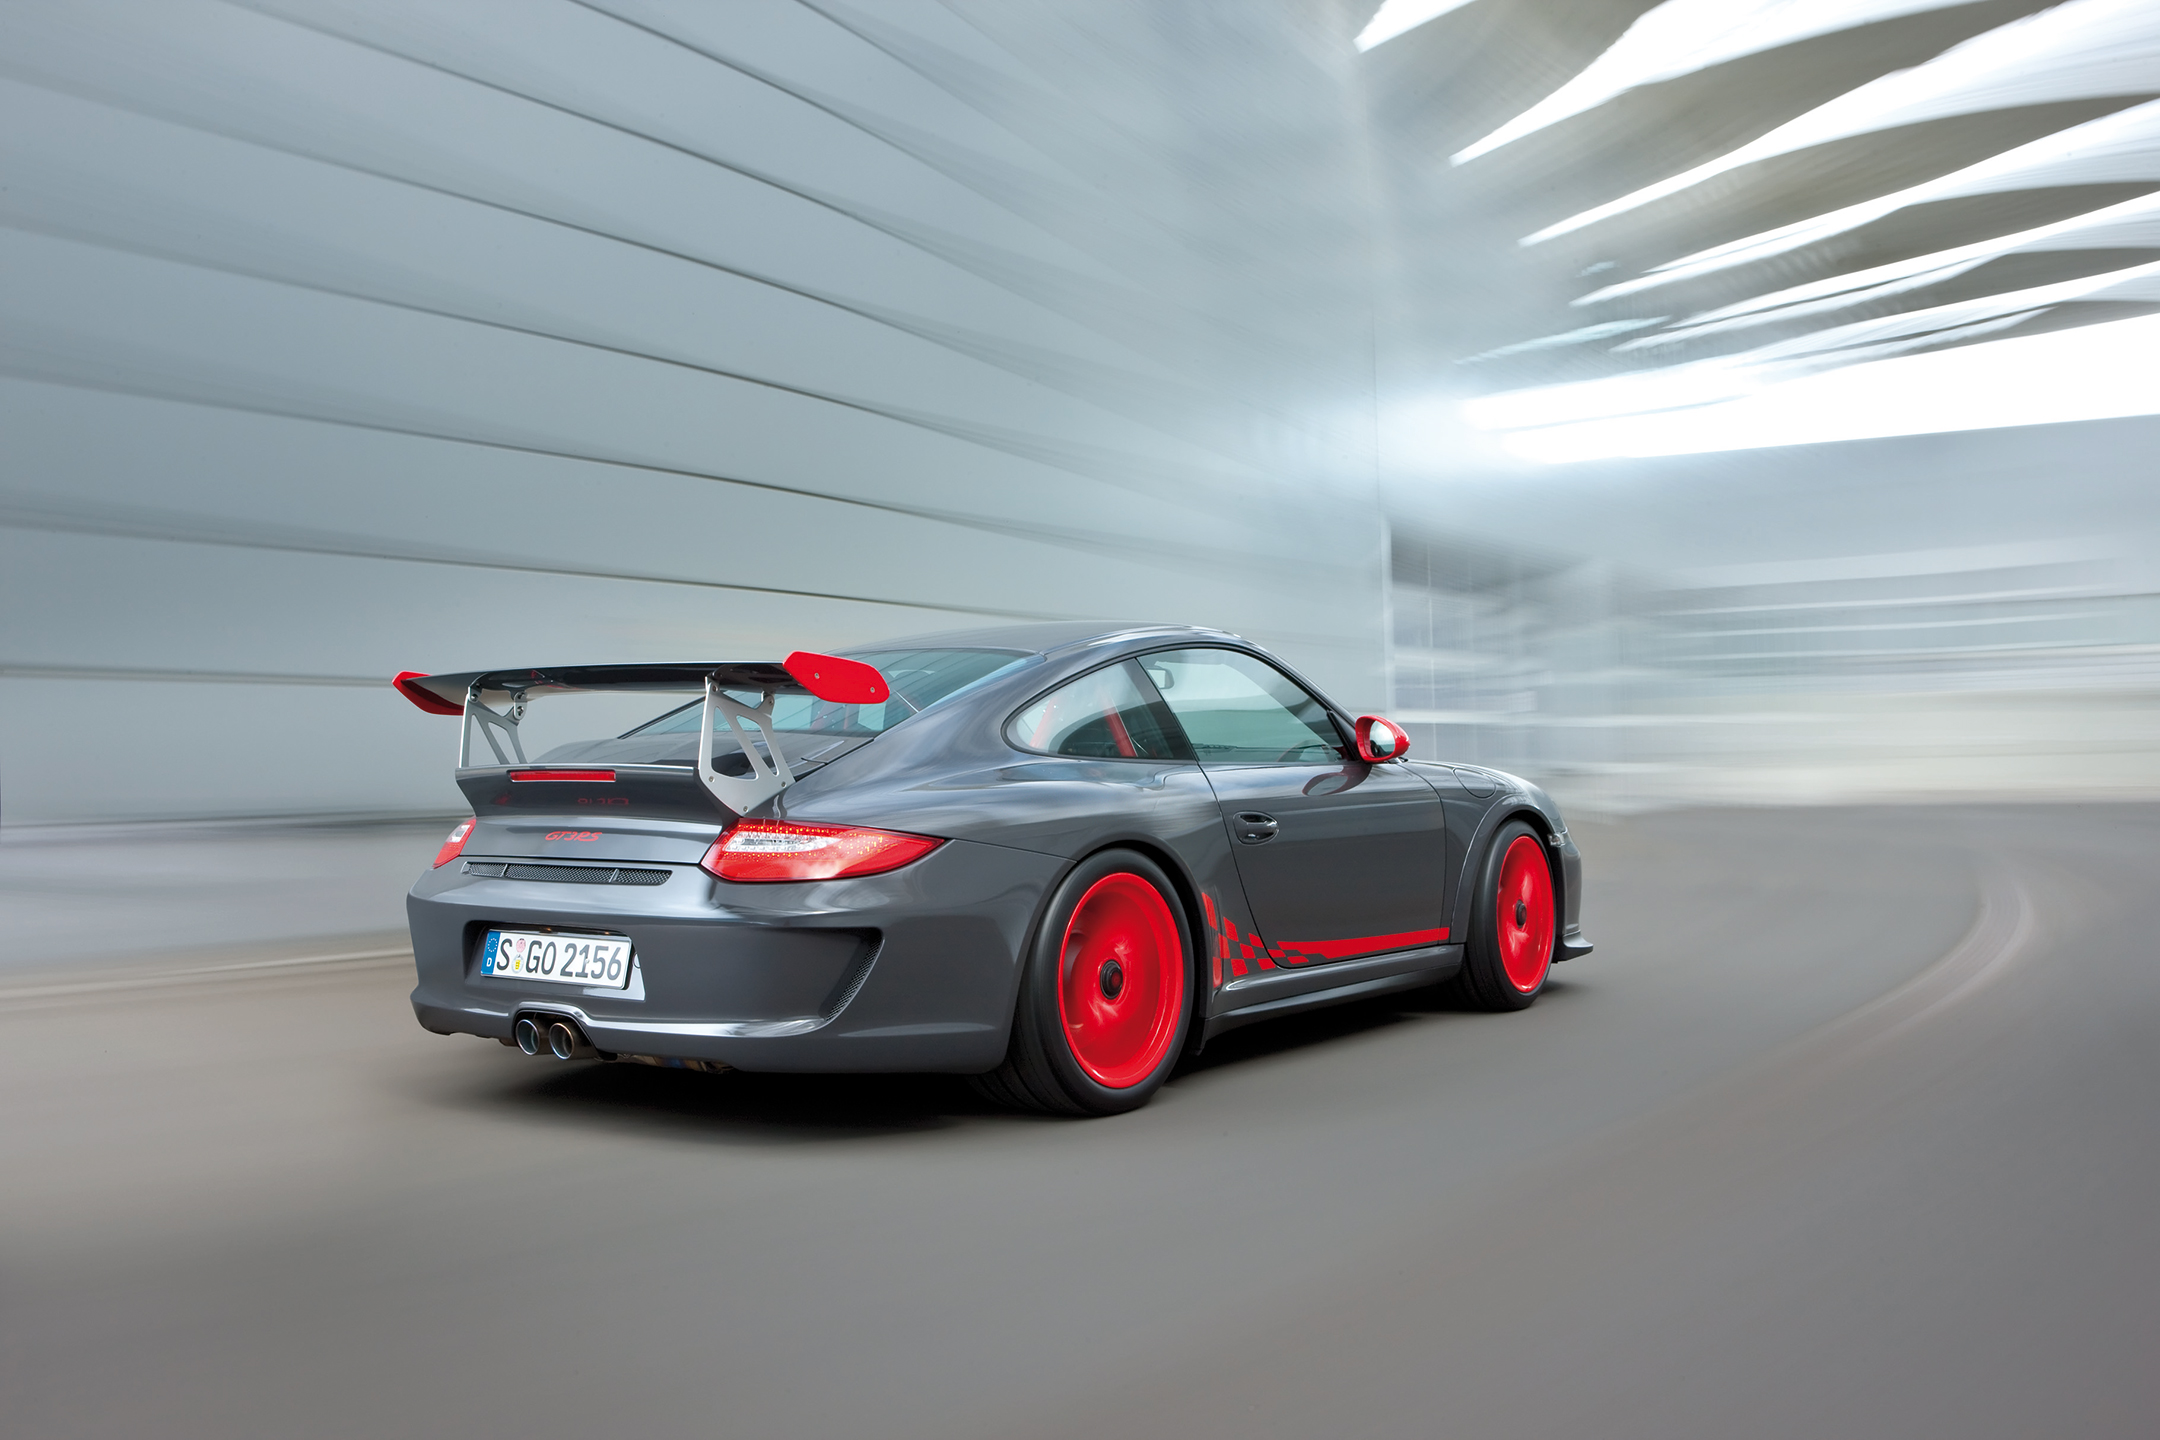 2010 Porsche GT3 RS in motion